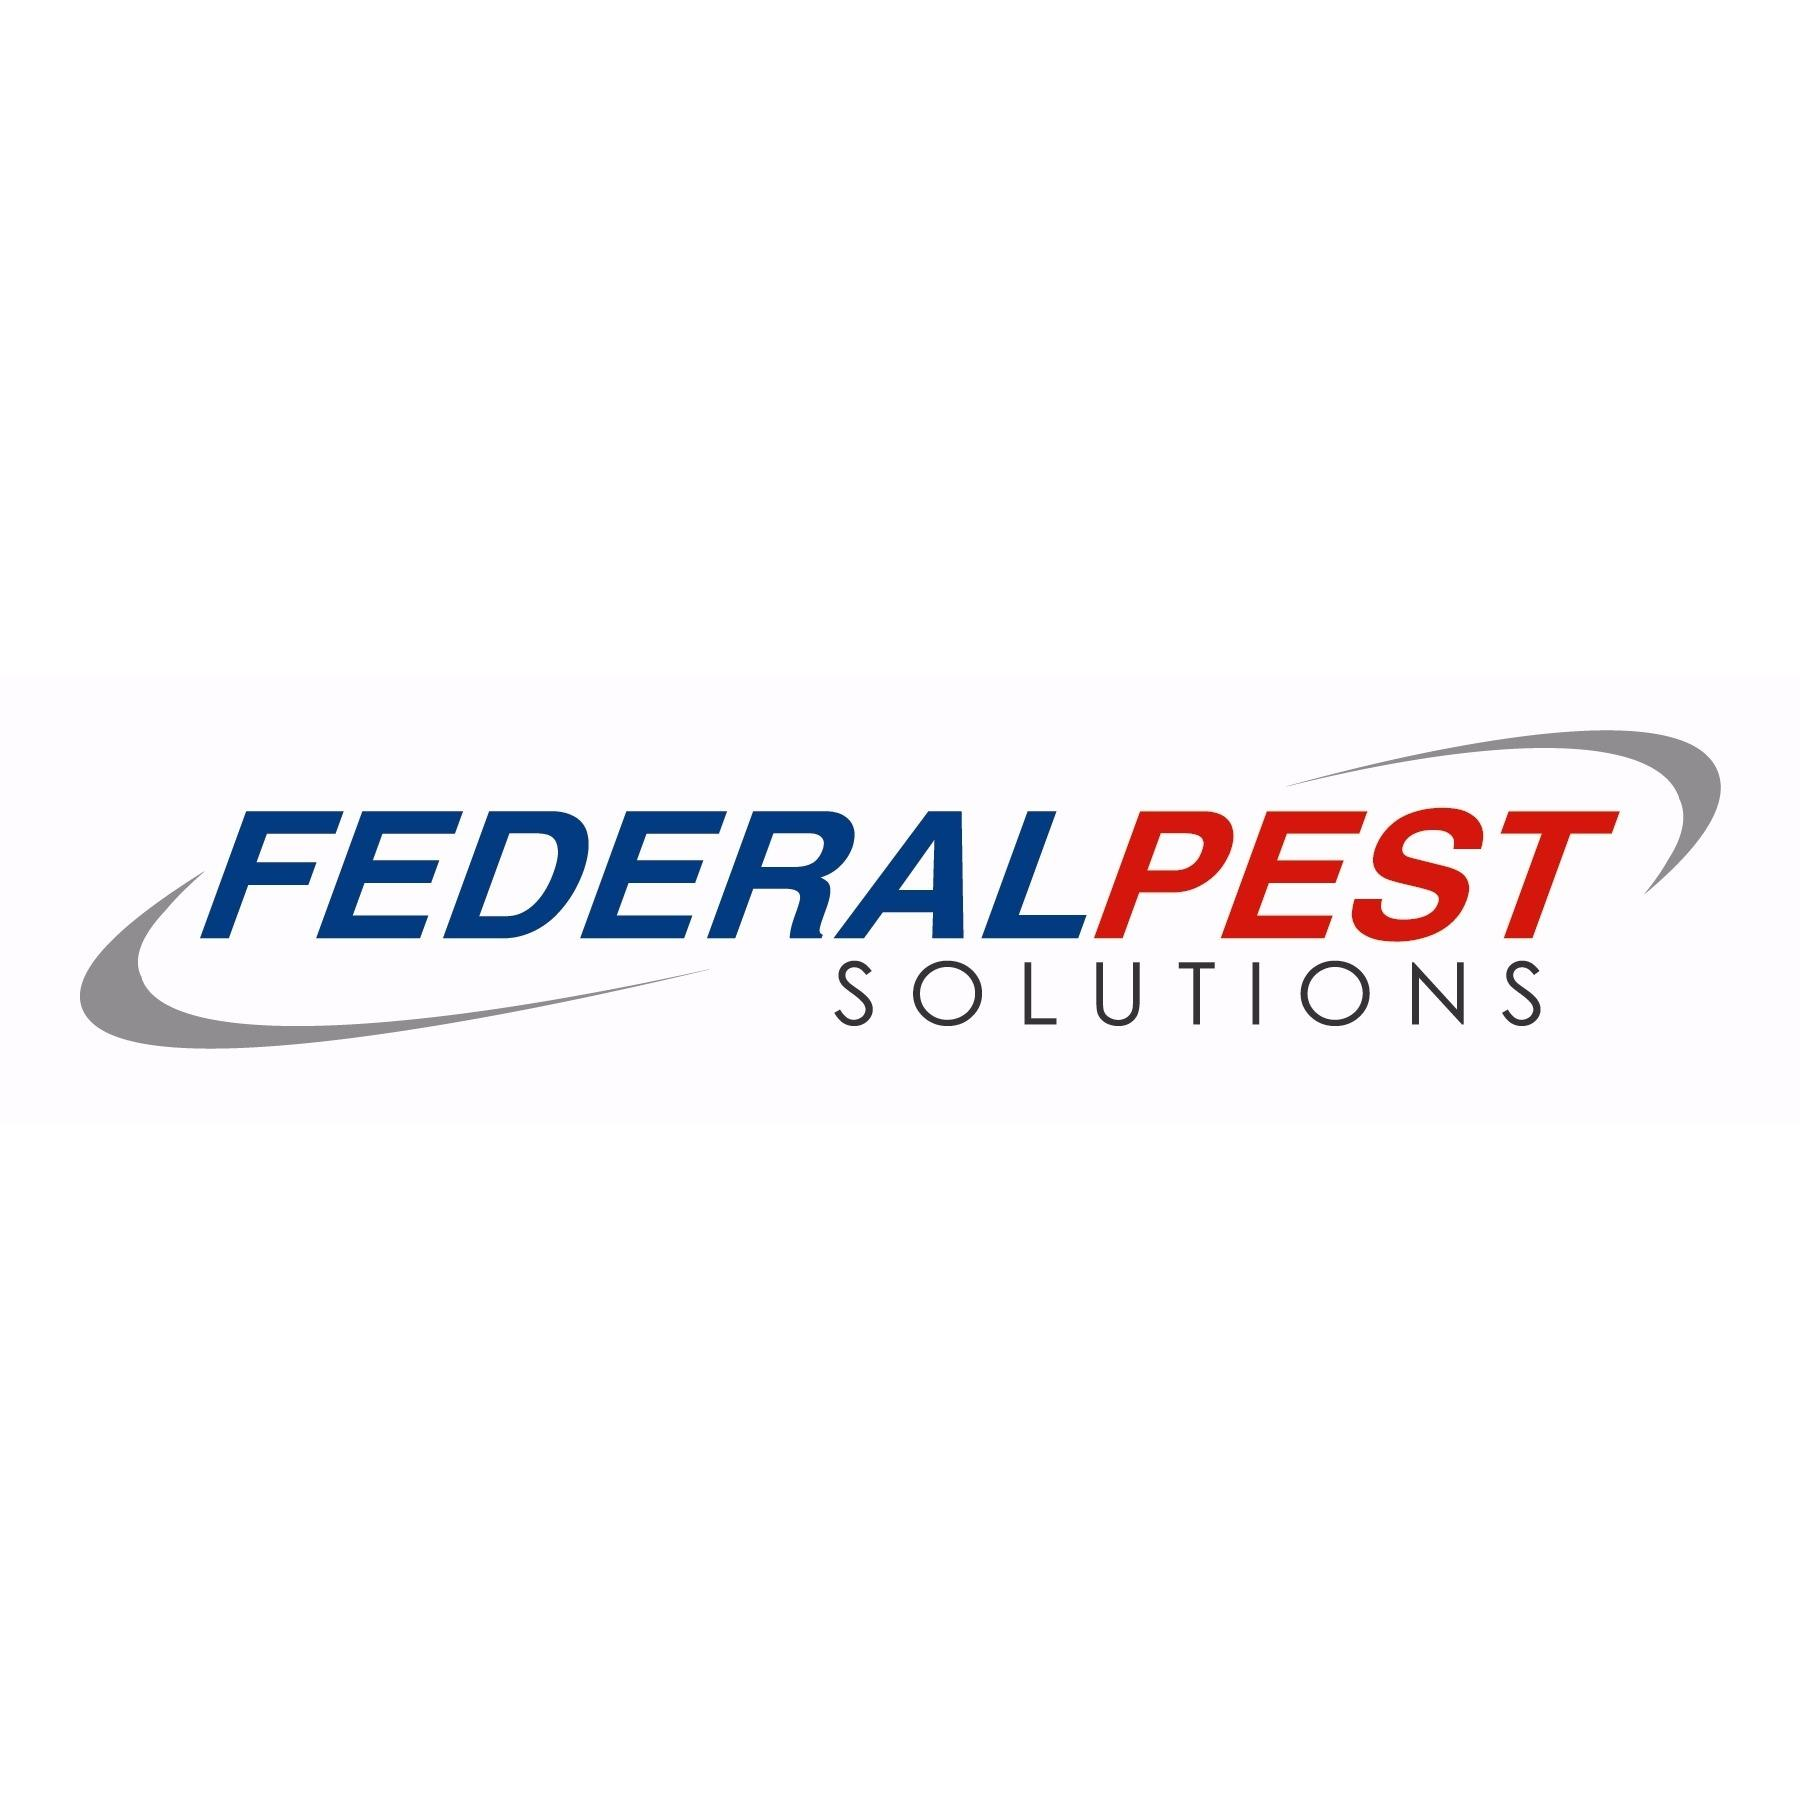 Federal Pest Solutions image 4